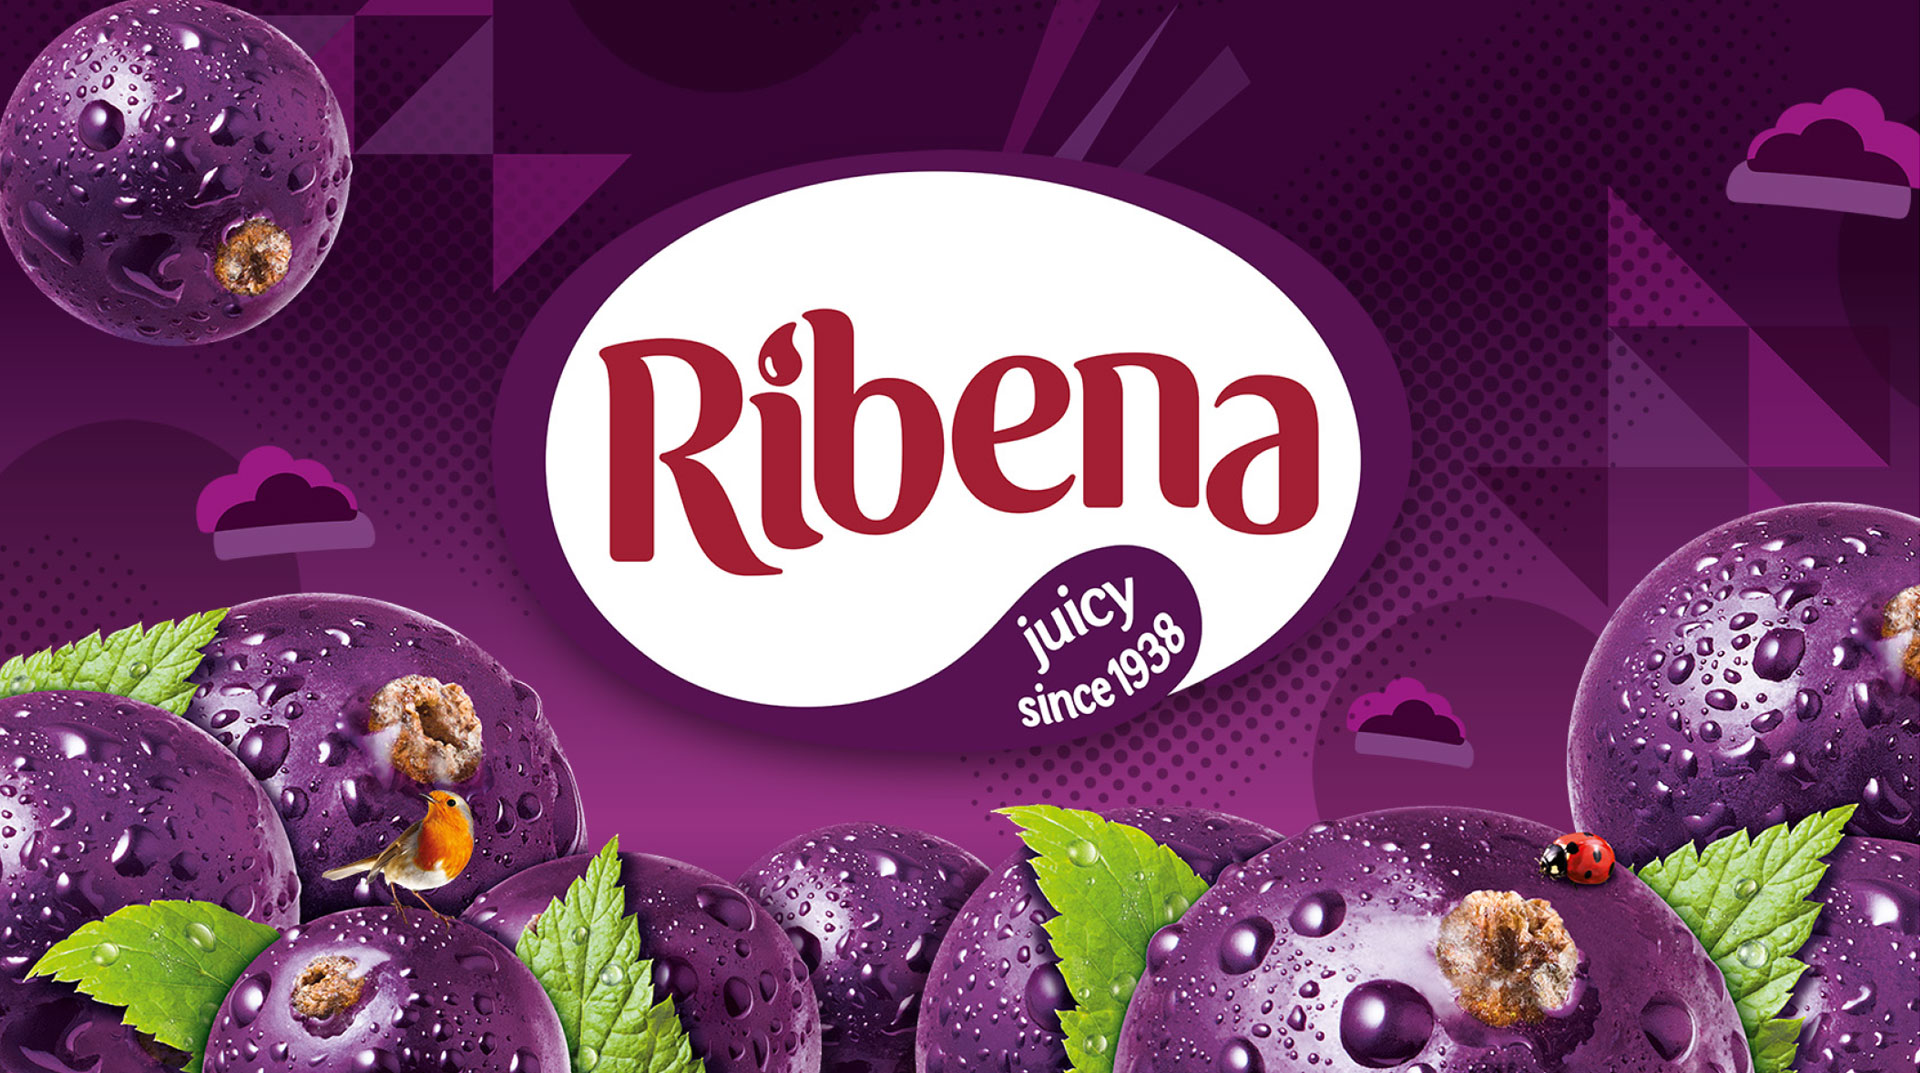 Ribena - Juicy since 1938 Image